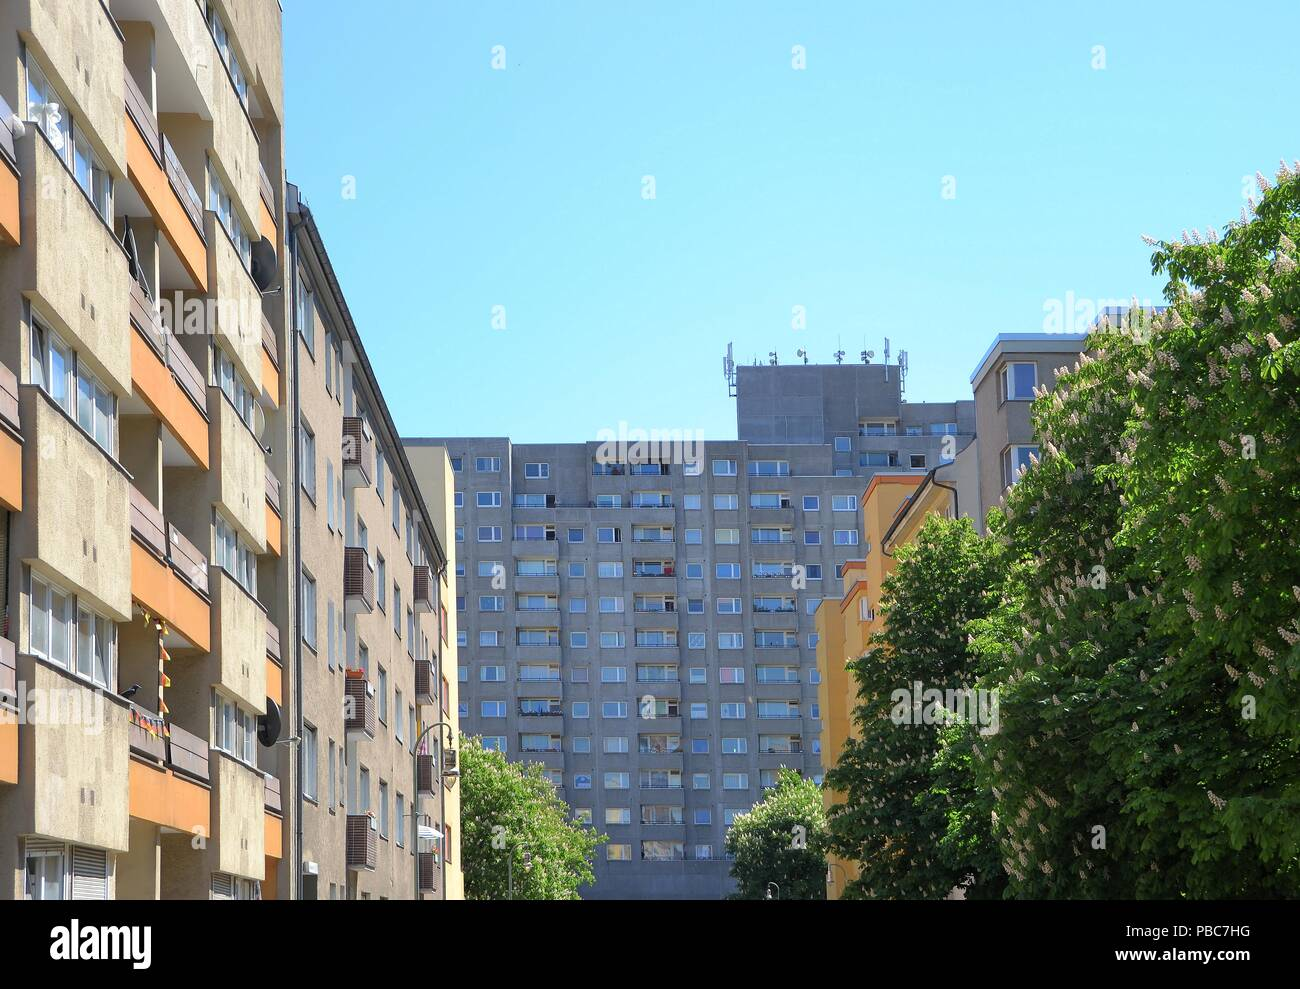 Social housing in the city center of Berlin Stock Photo